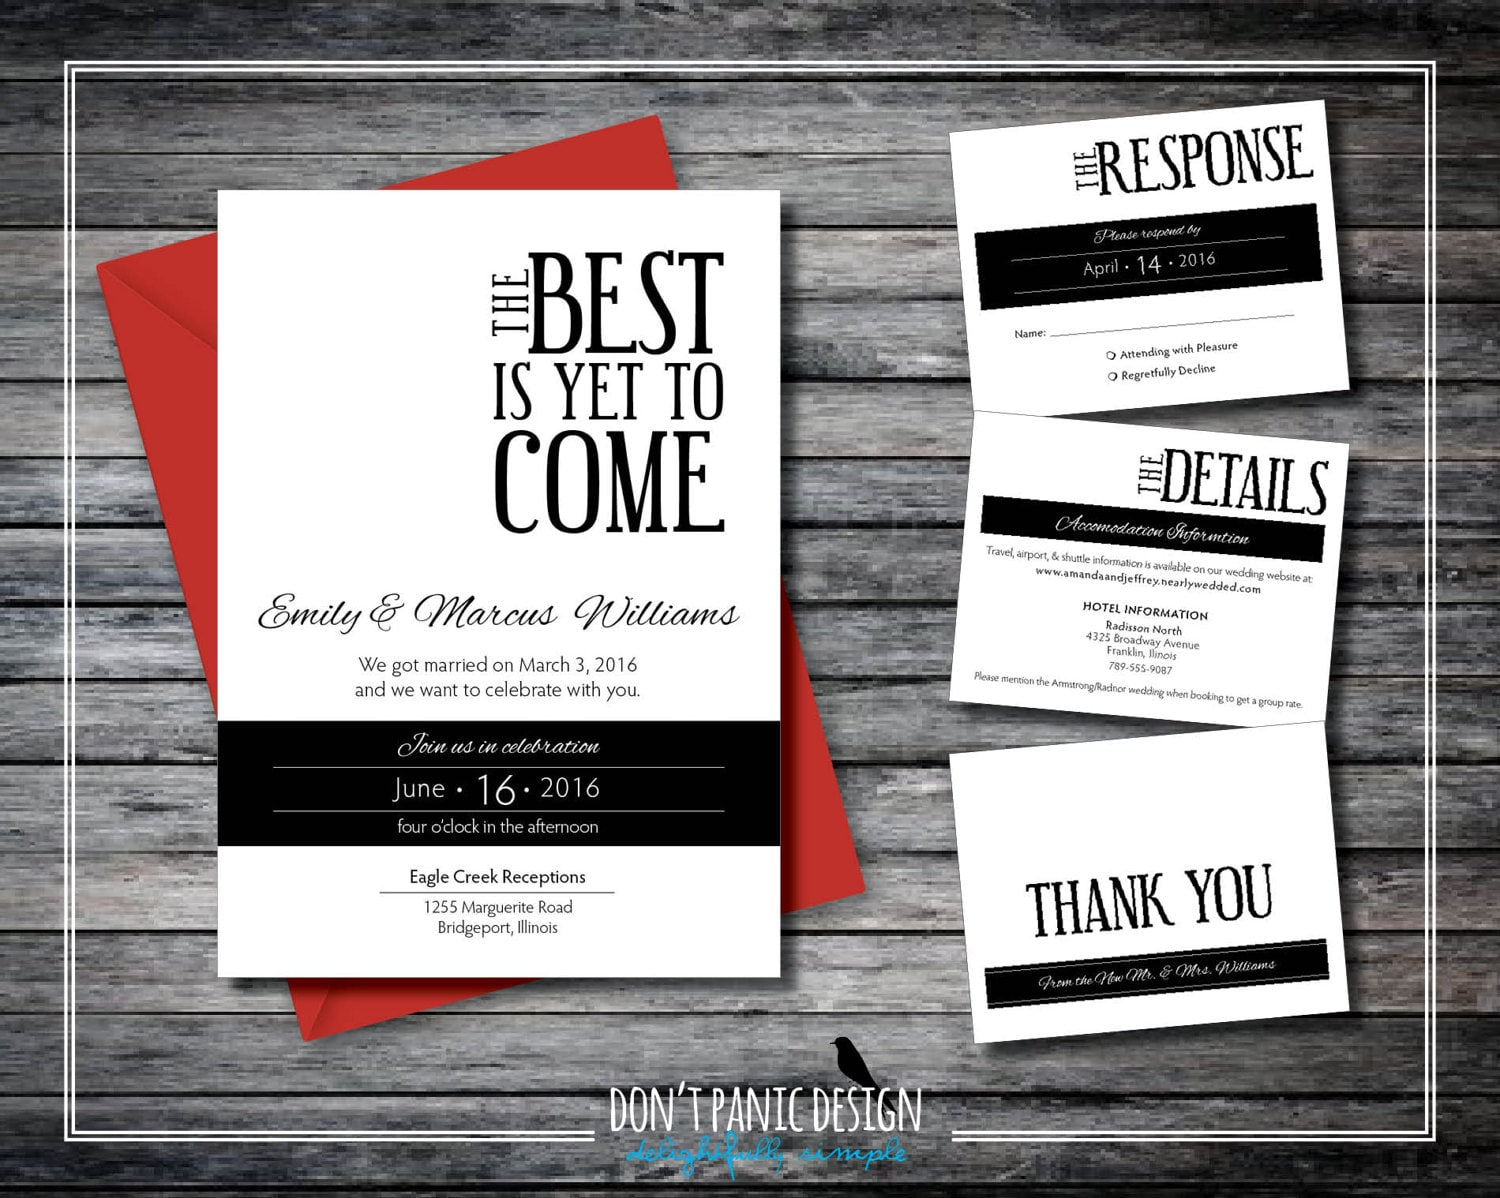 Printable Wedding Announcement Set The Best is Yet to Come | Etsy